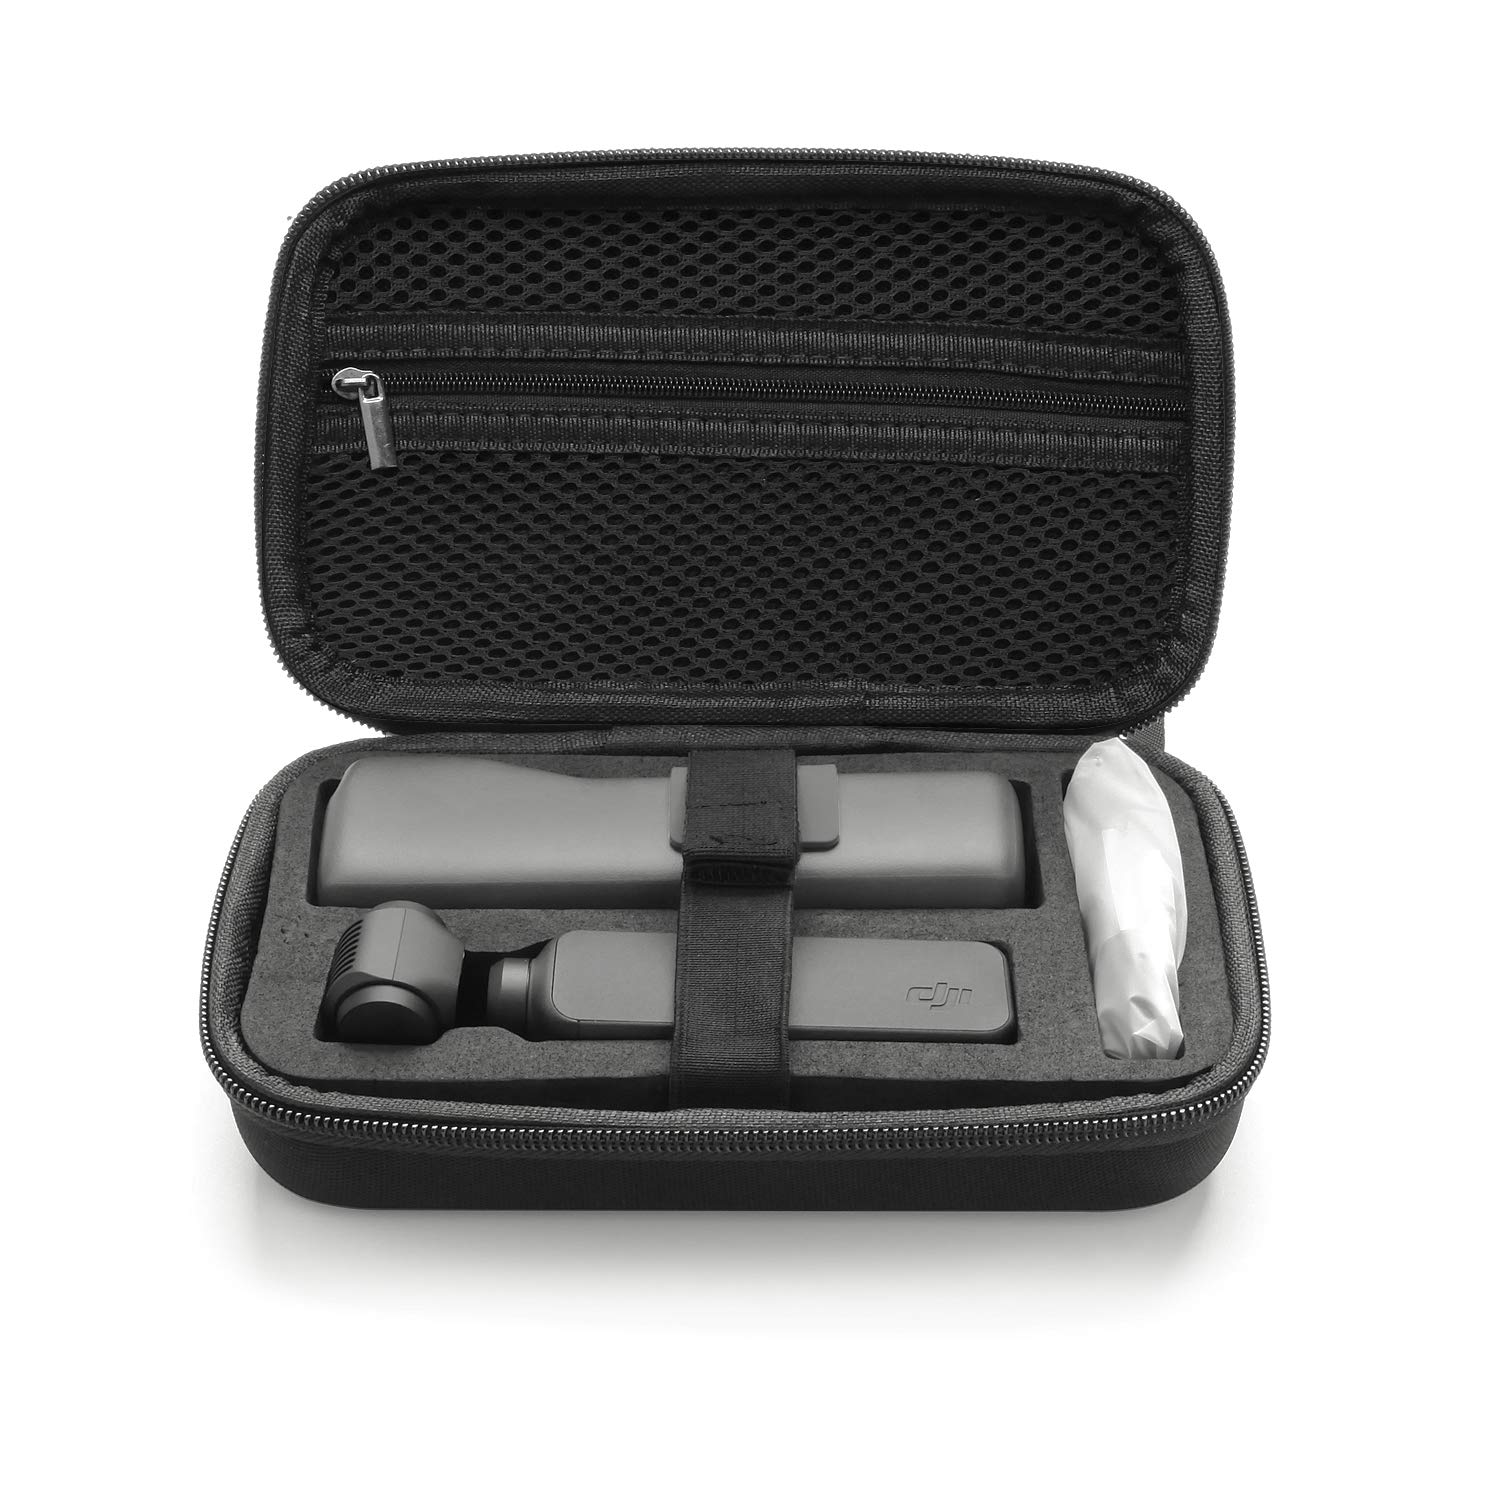 Case Compatible with DJI Osmo Pocket, Portable Storage Carrying Bag, Hard EVA Waterproof Gimbal and Accessories for Osmo Pocket